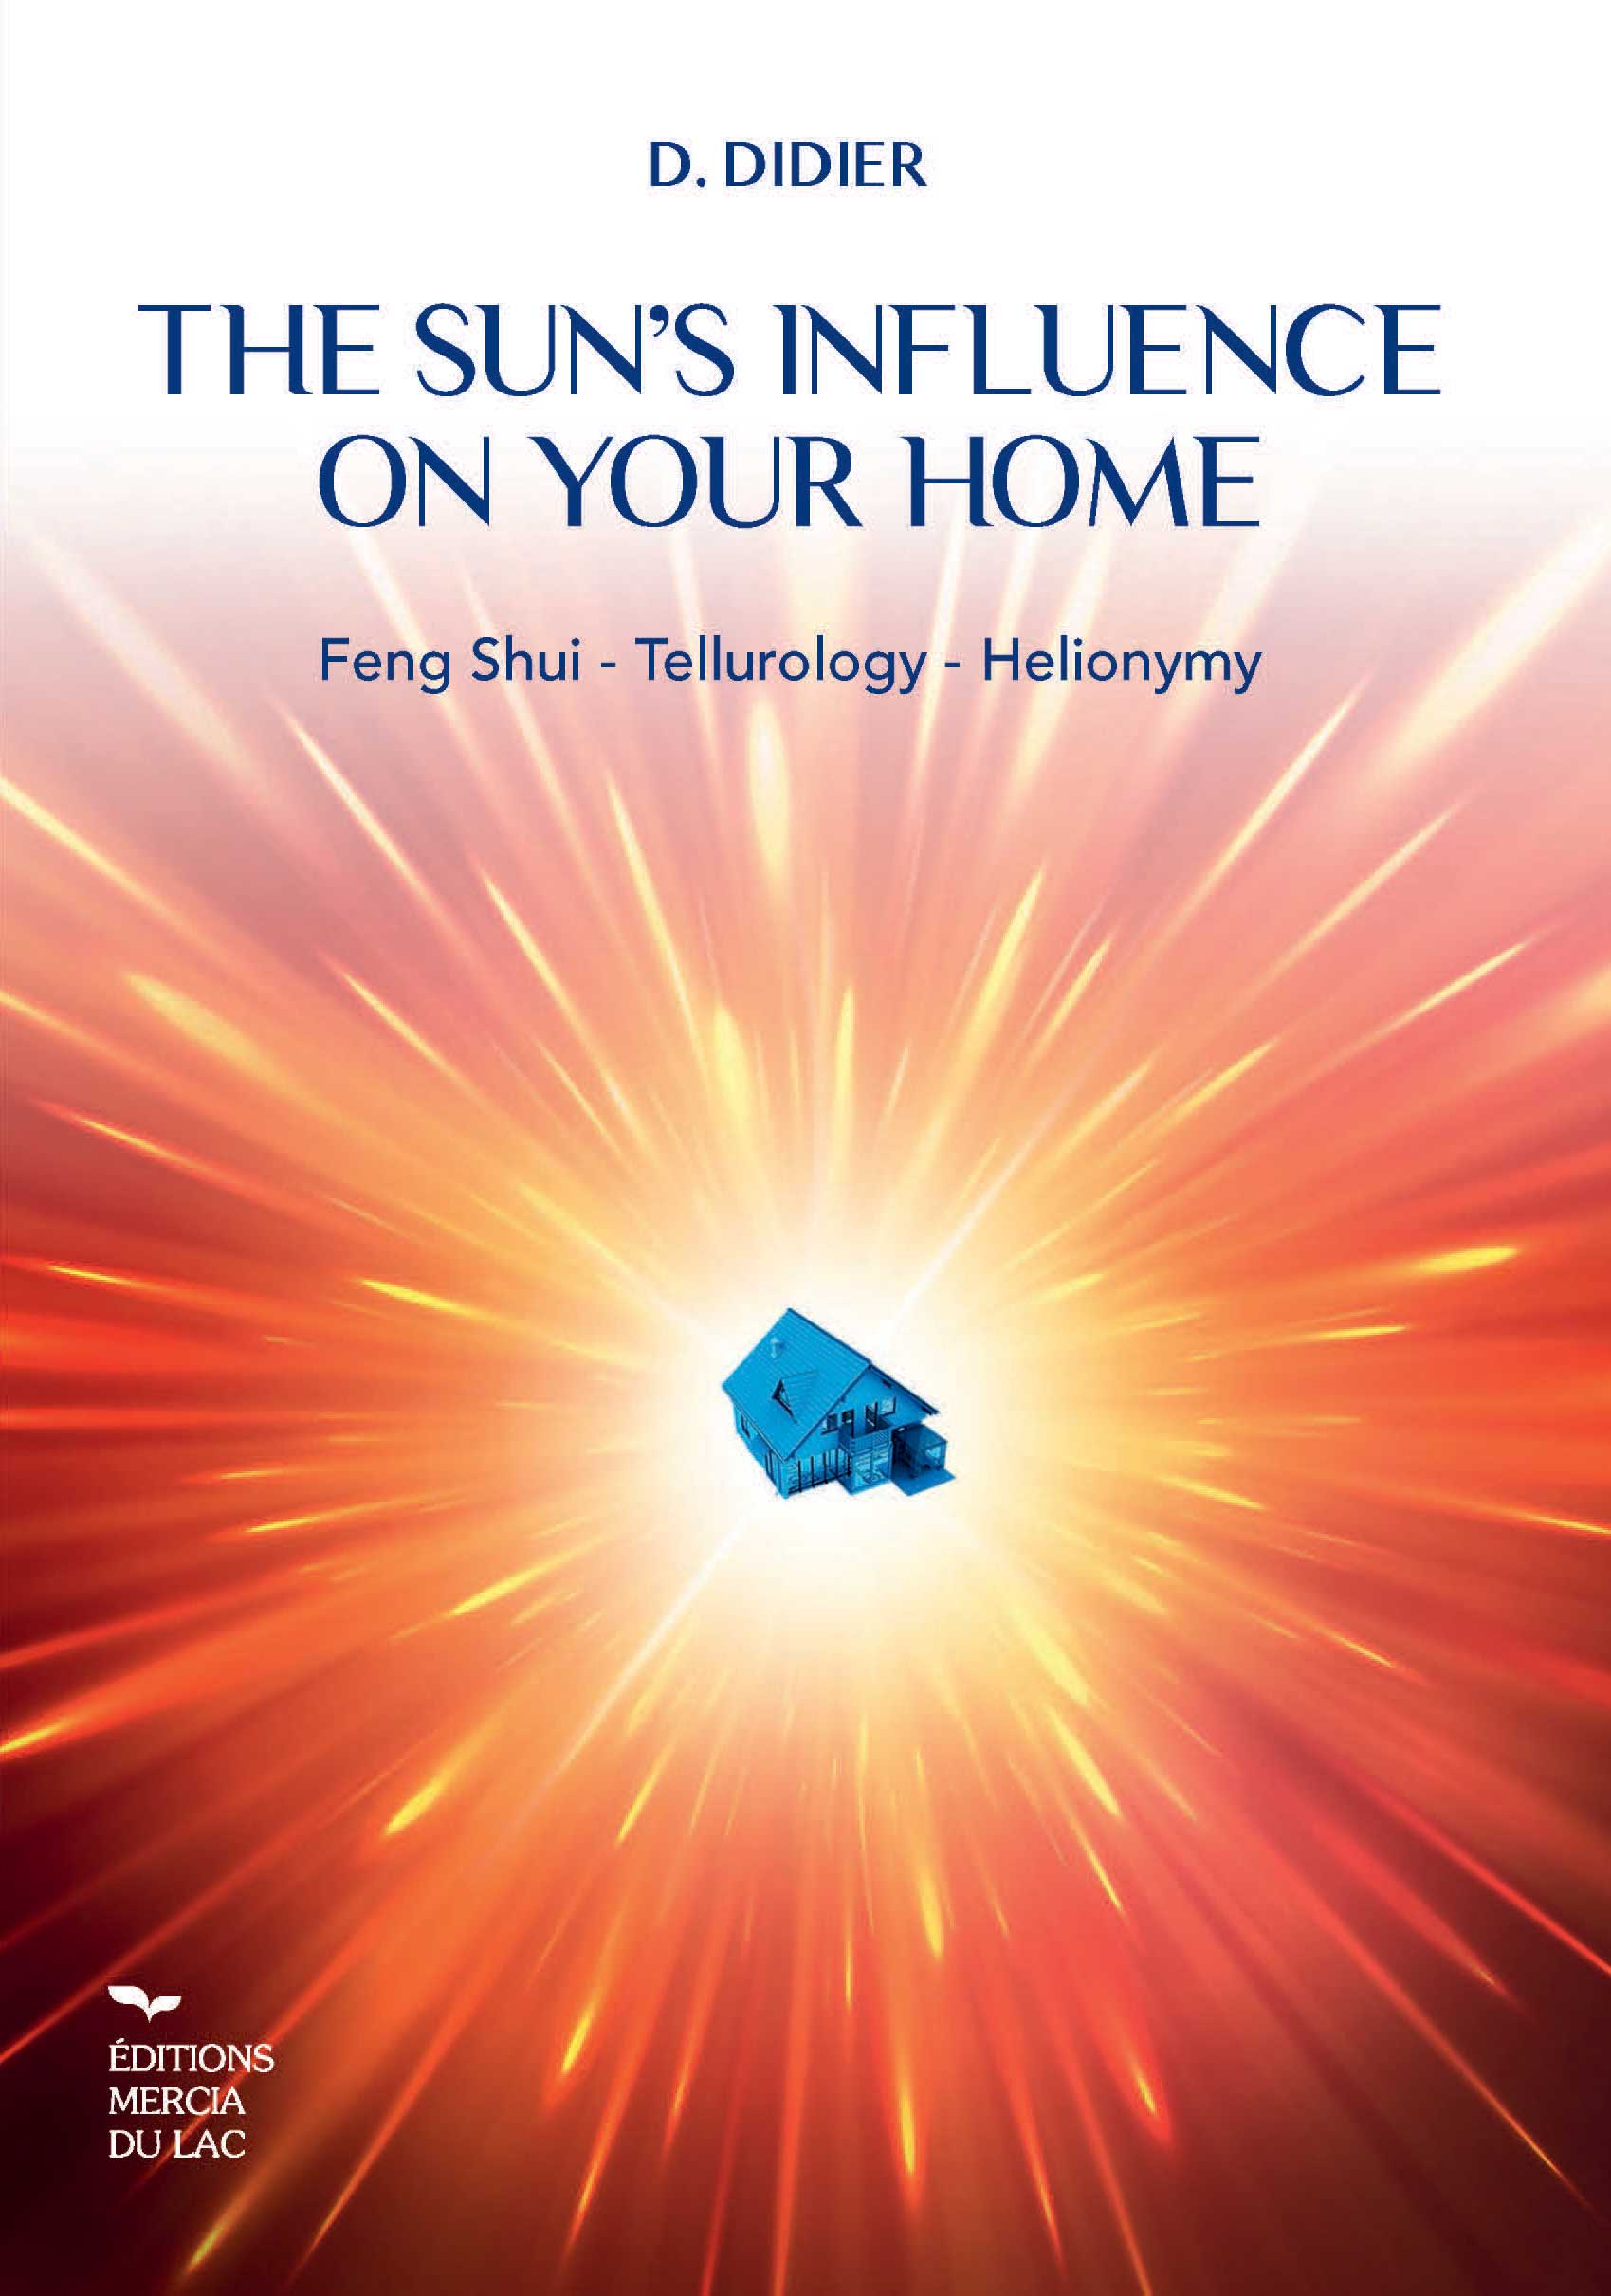 This Feng Shui for the Present Time provides contemporary insight into how to design one's home thanks to Tellurology and Helionymy.